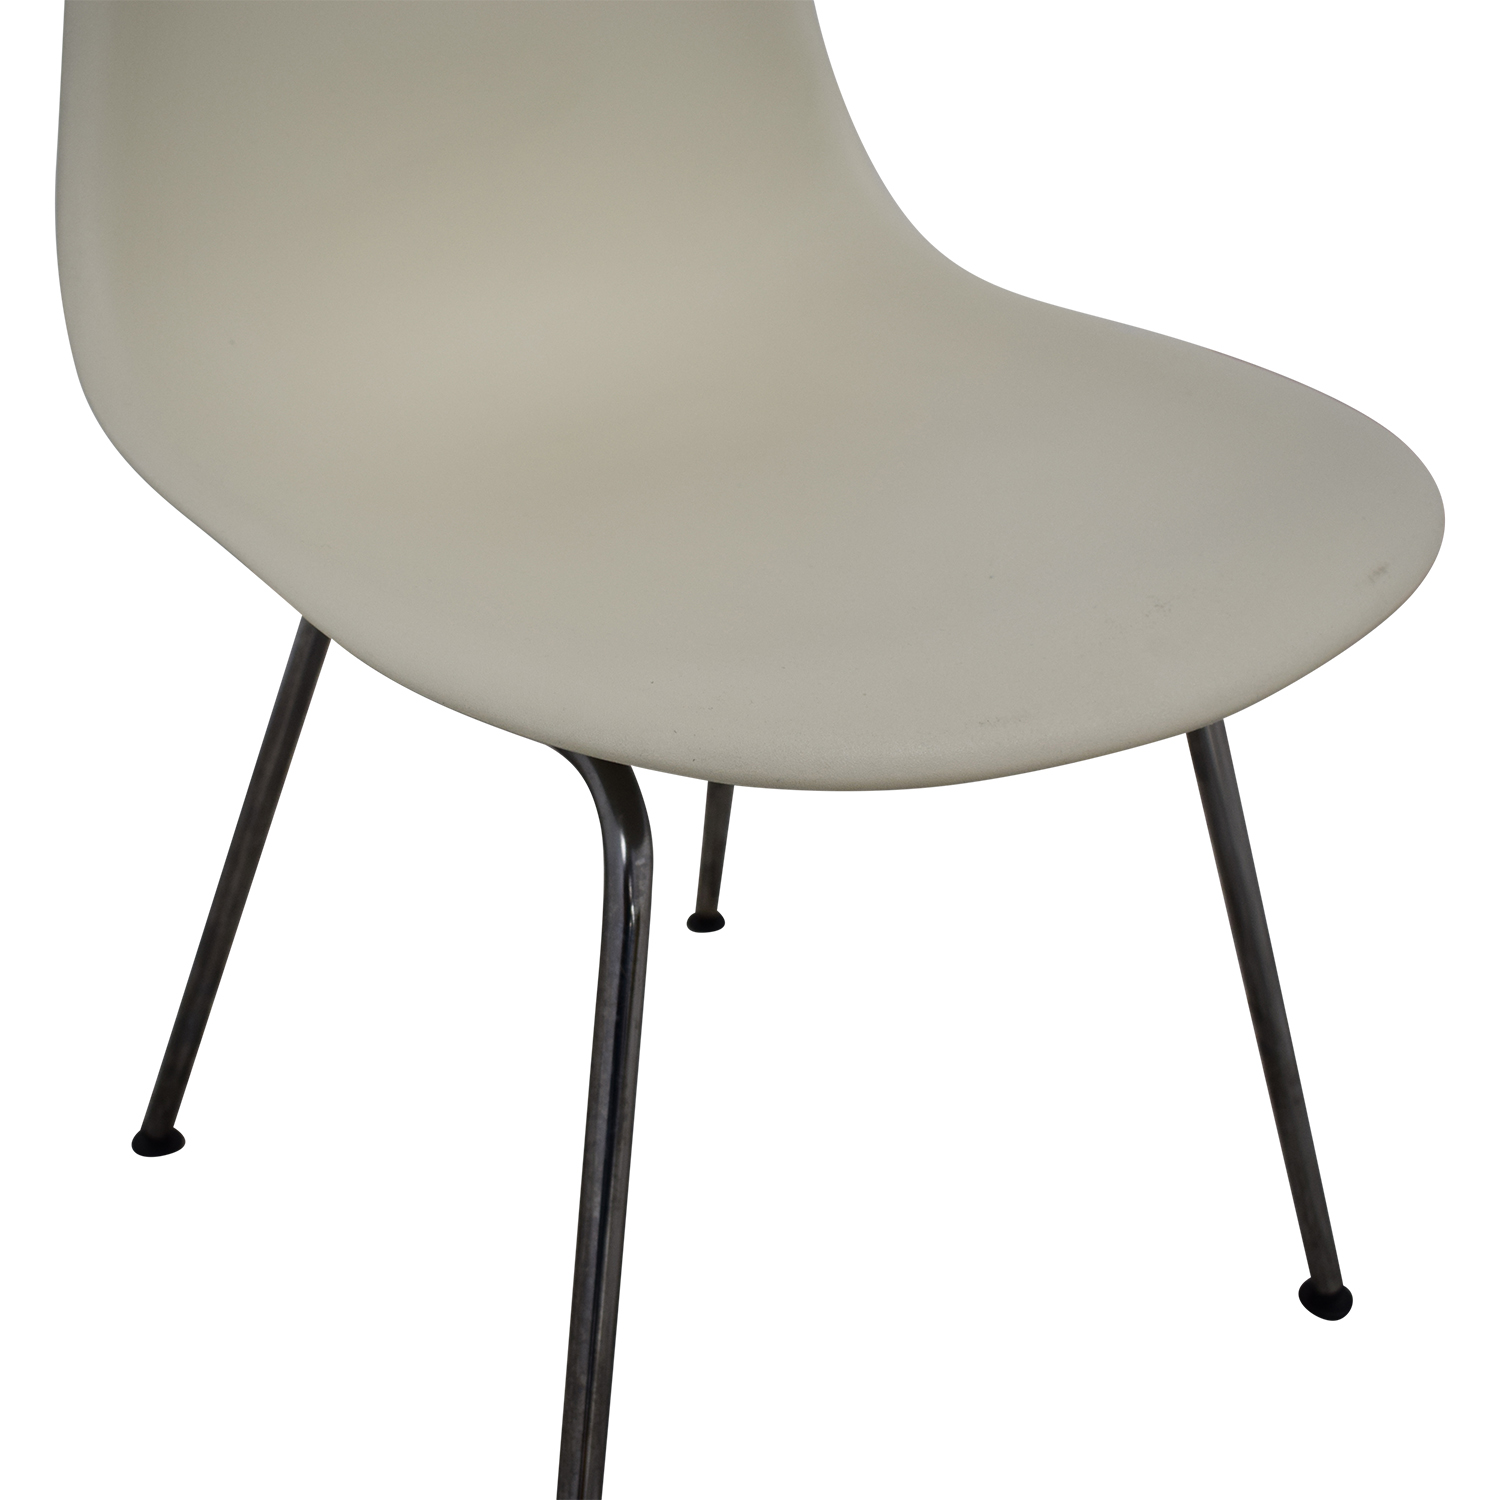 Design Within Reach Design Within Reach Eames Molded Plastic 4 Leg Side Chair Chairs